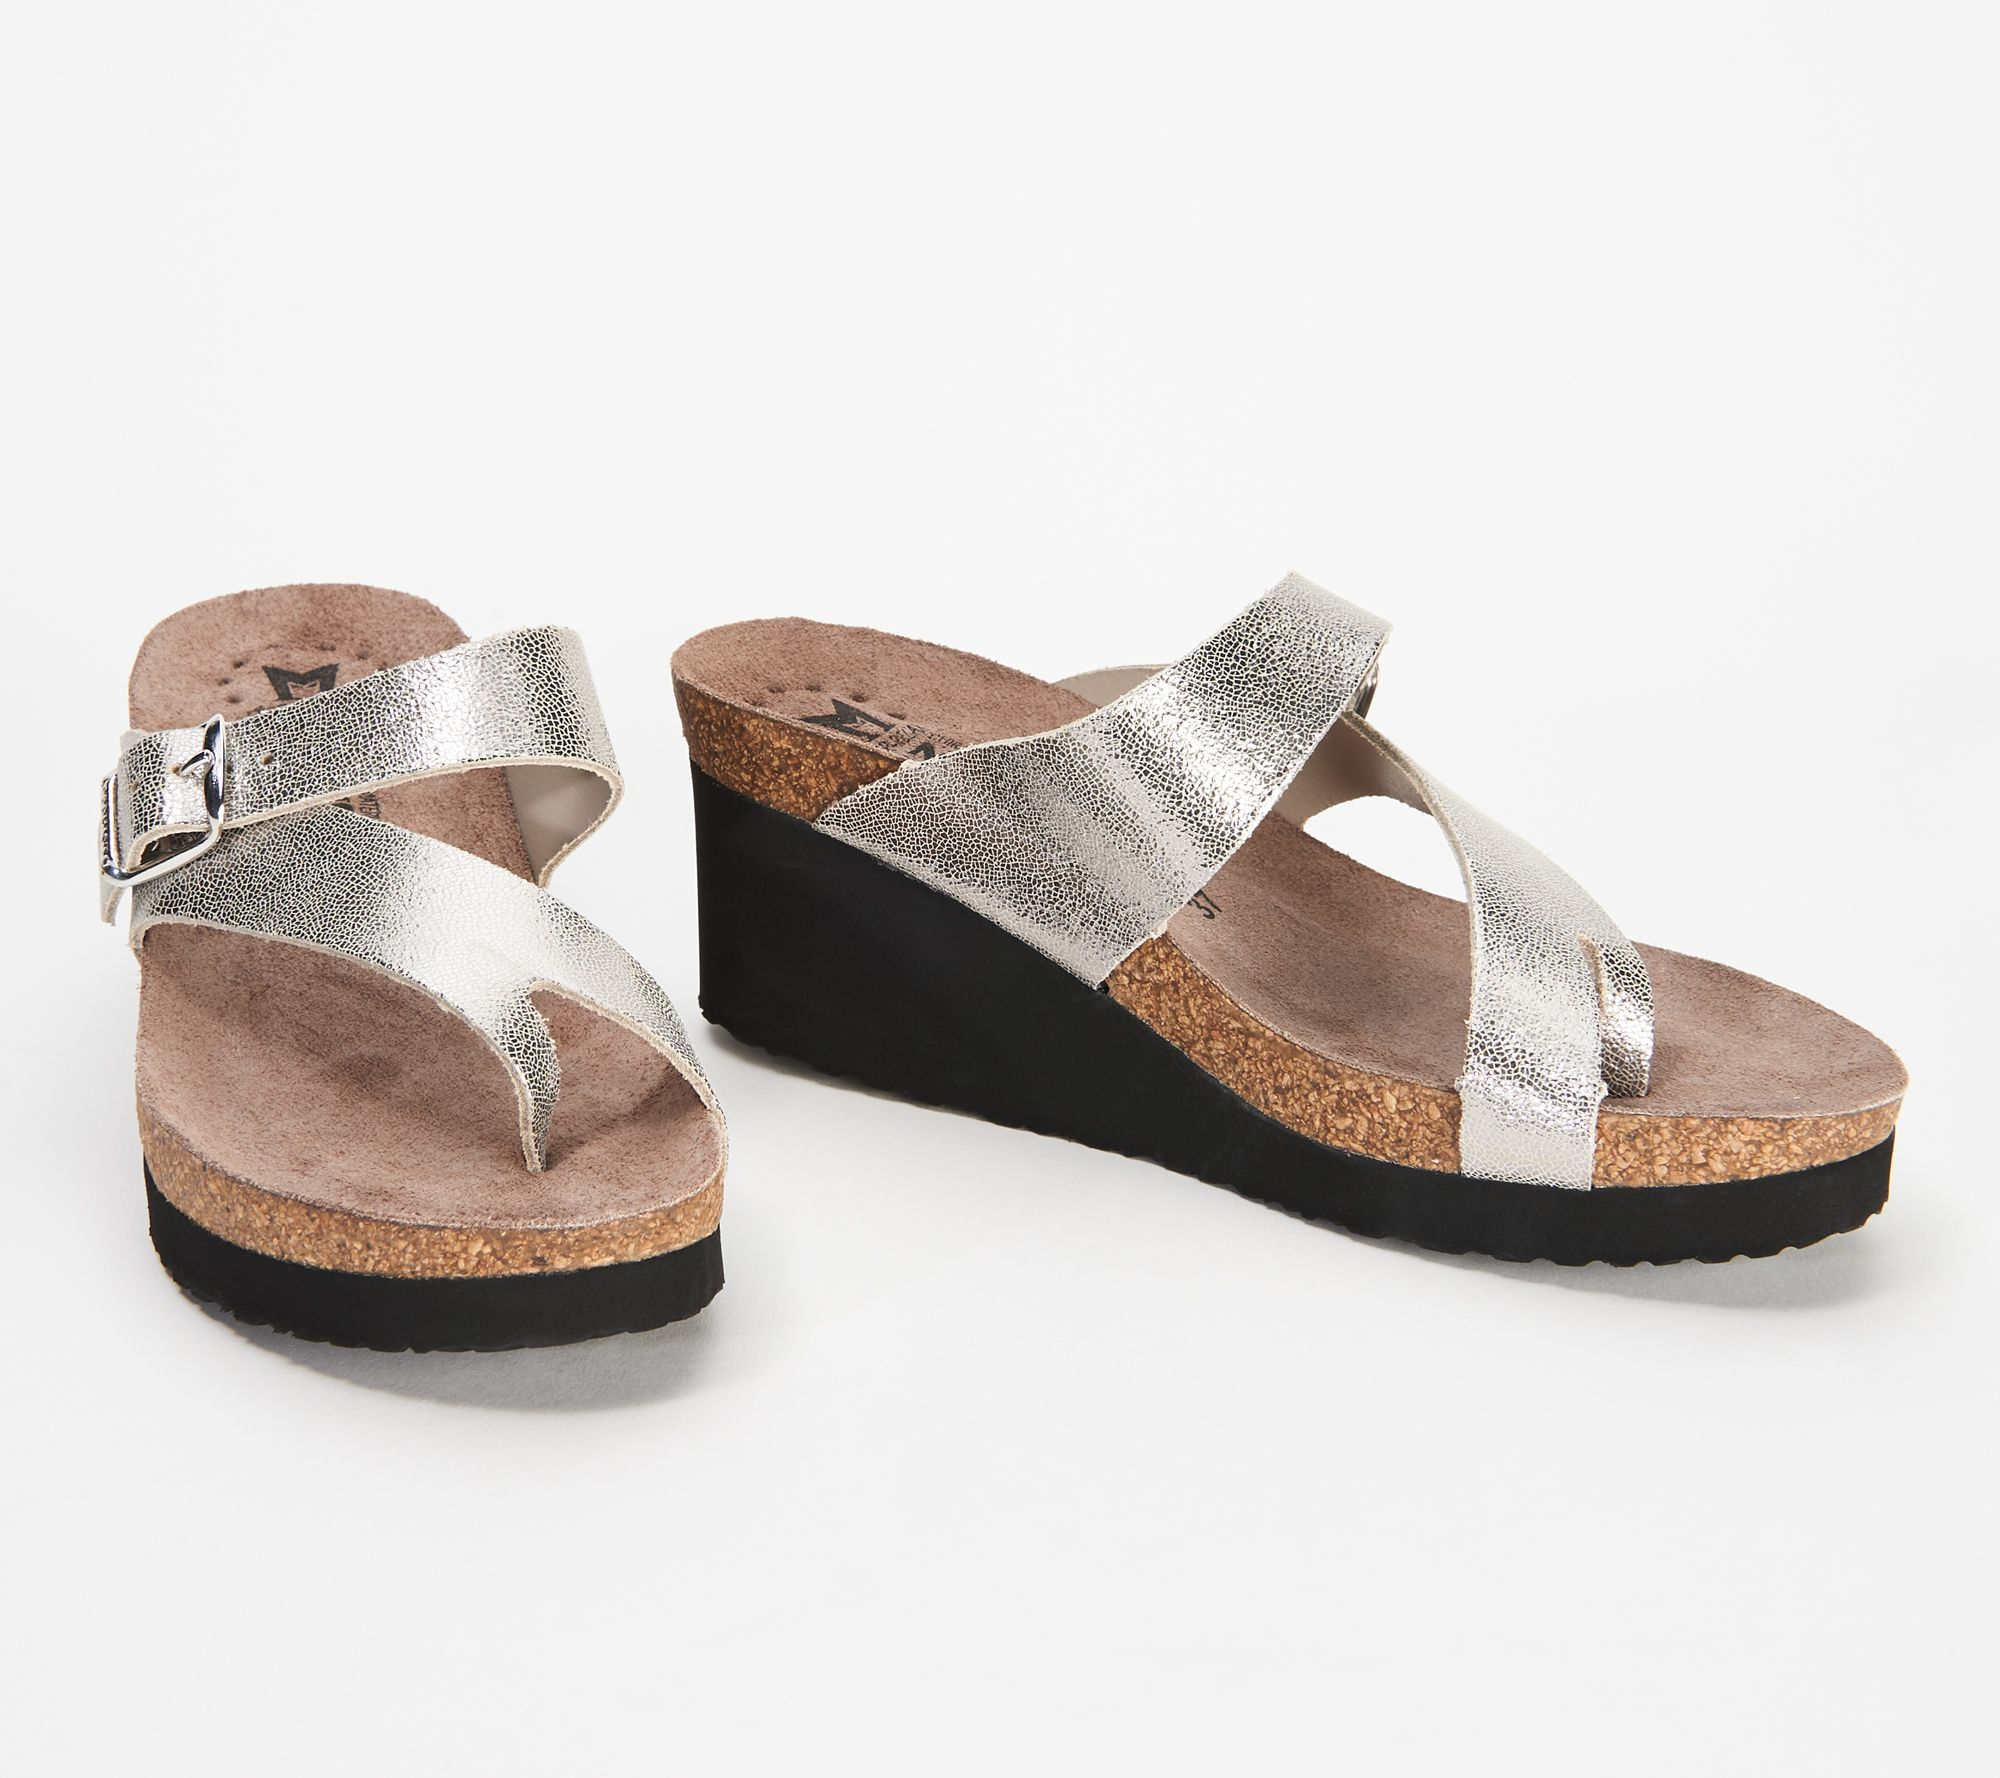 503ad37339 MEPHISTO Nubuck Leather Slide Wedges - Tyfanie - Page 1 — QVC.com